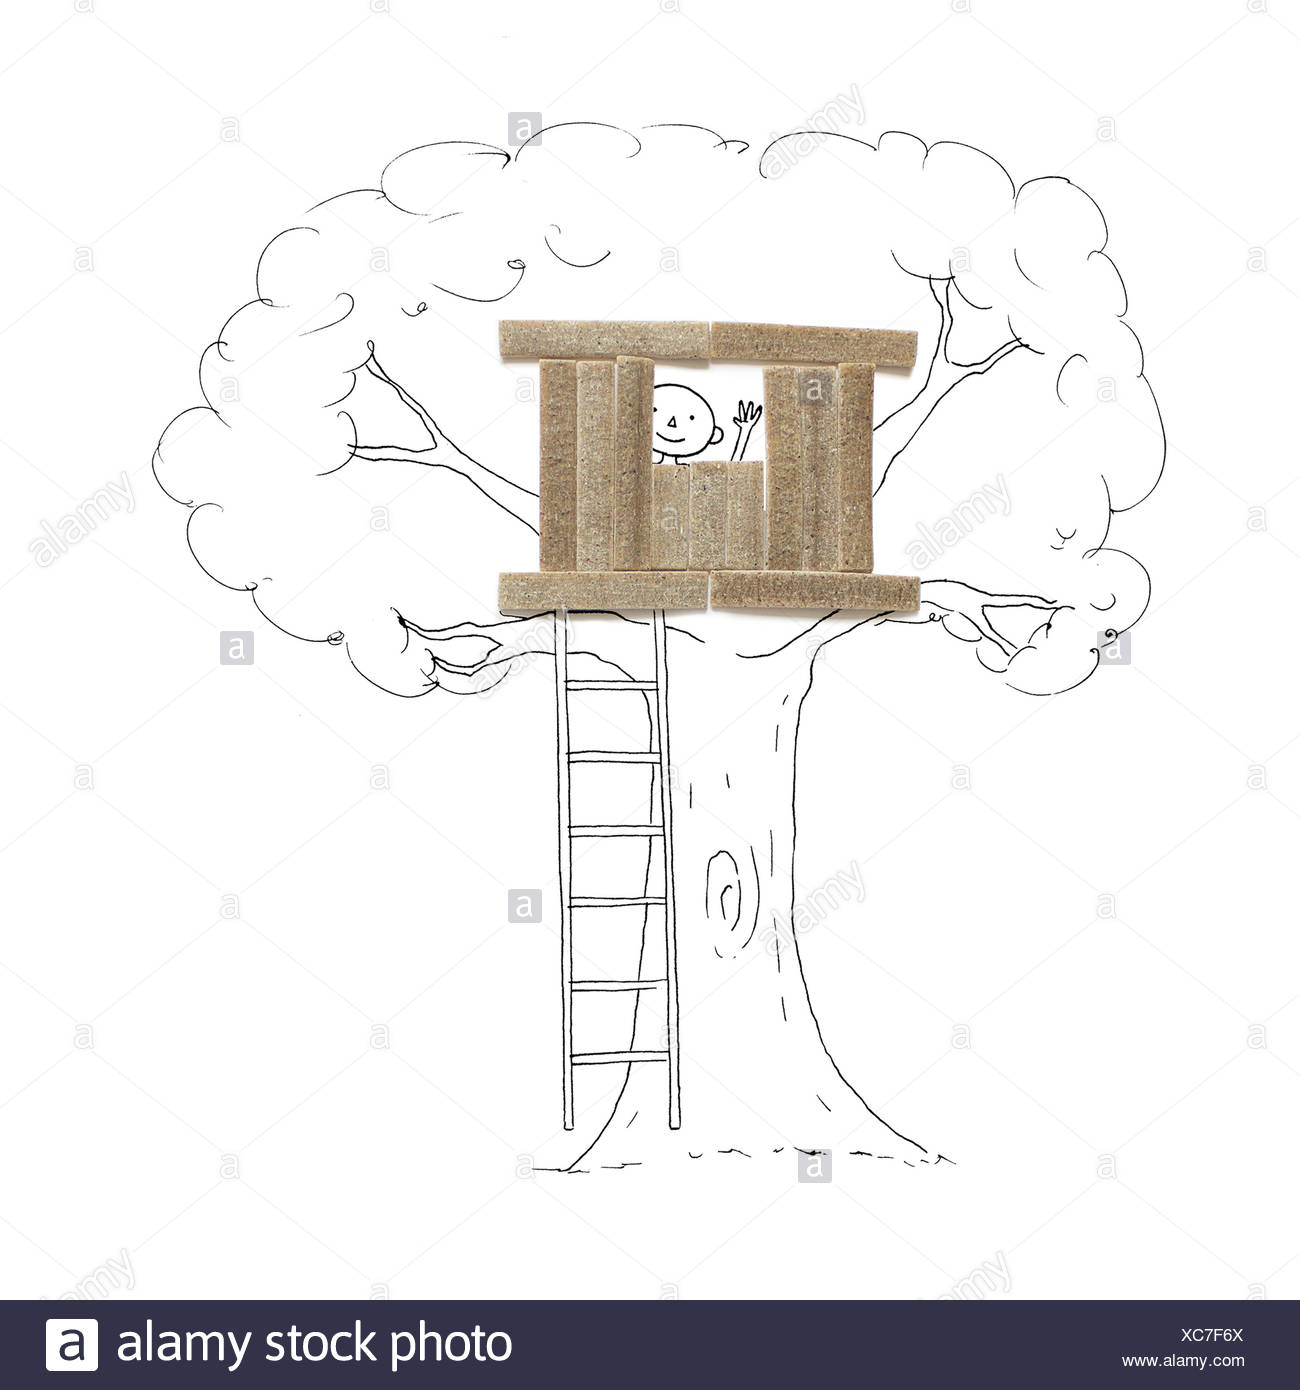 Conceptual boy in a treehouse - Stock Image